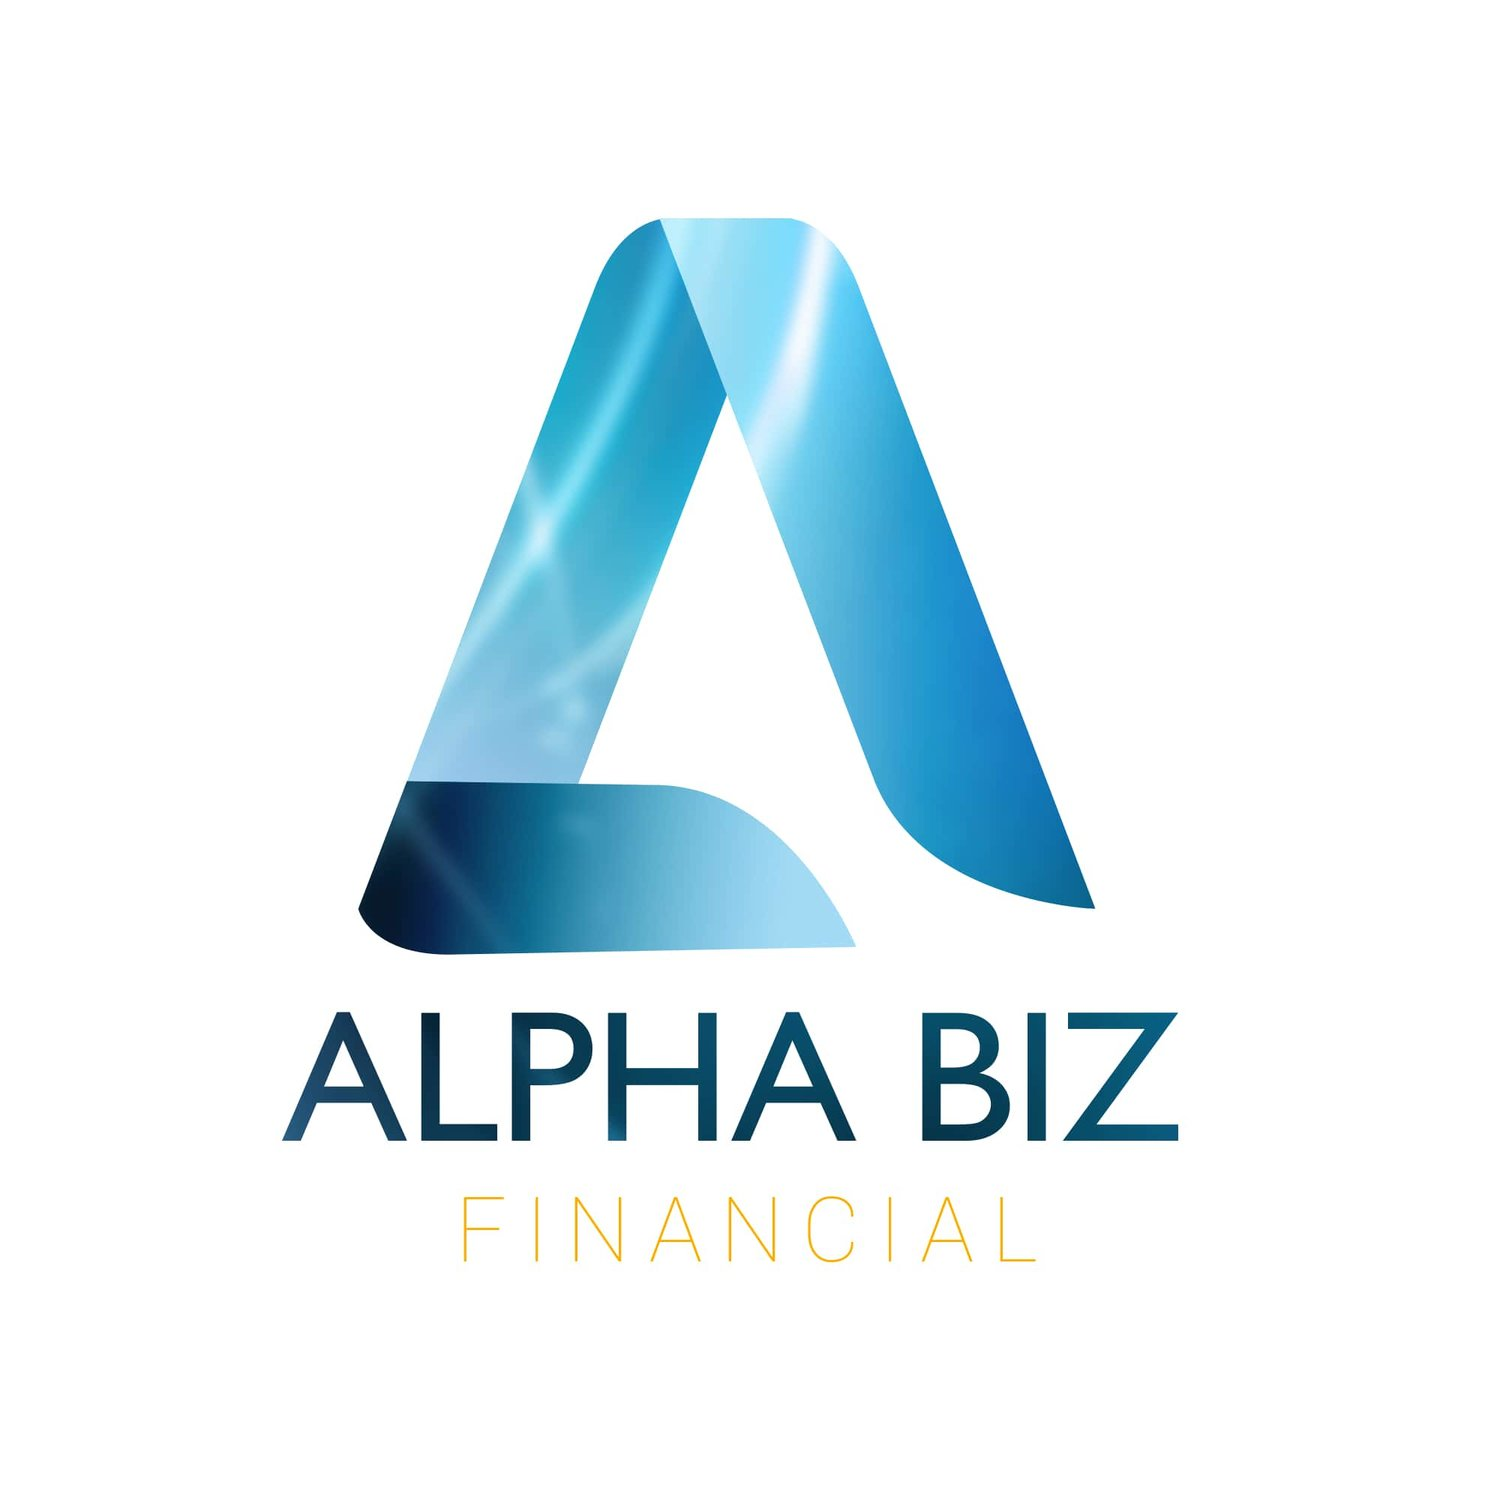 Alpha-Biz Financial LLC